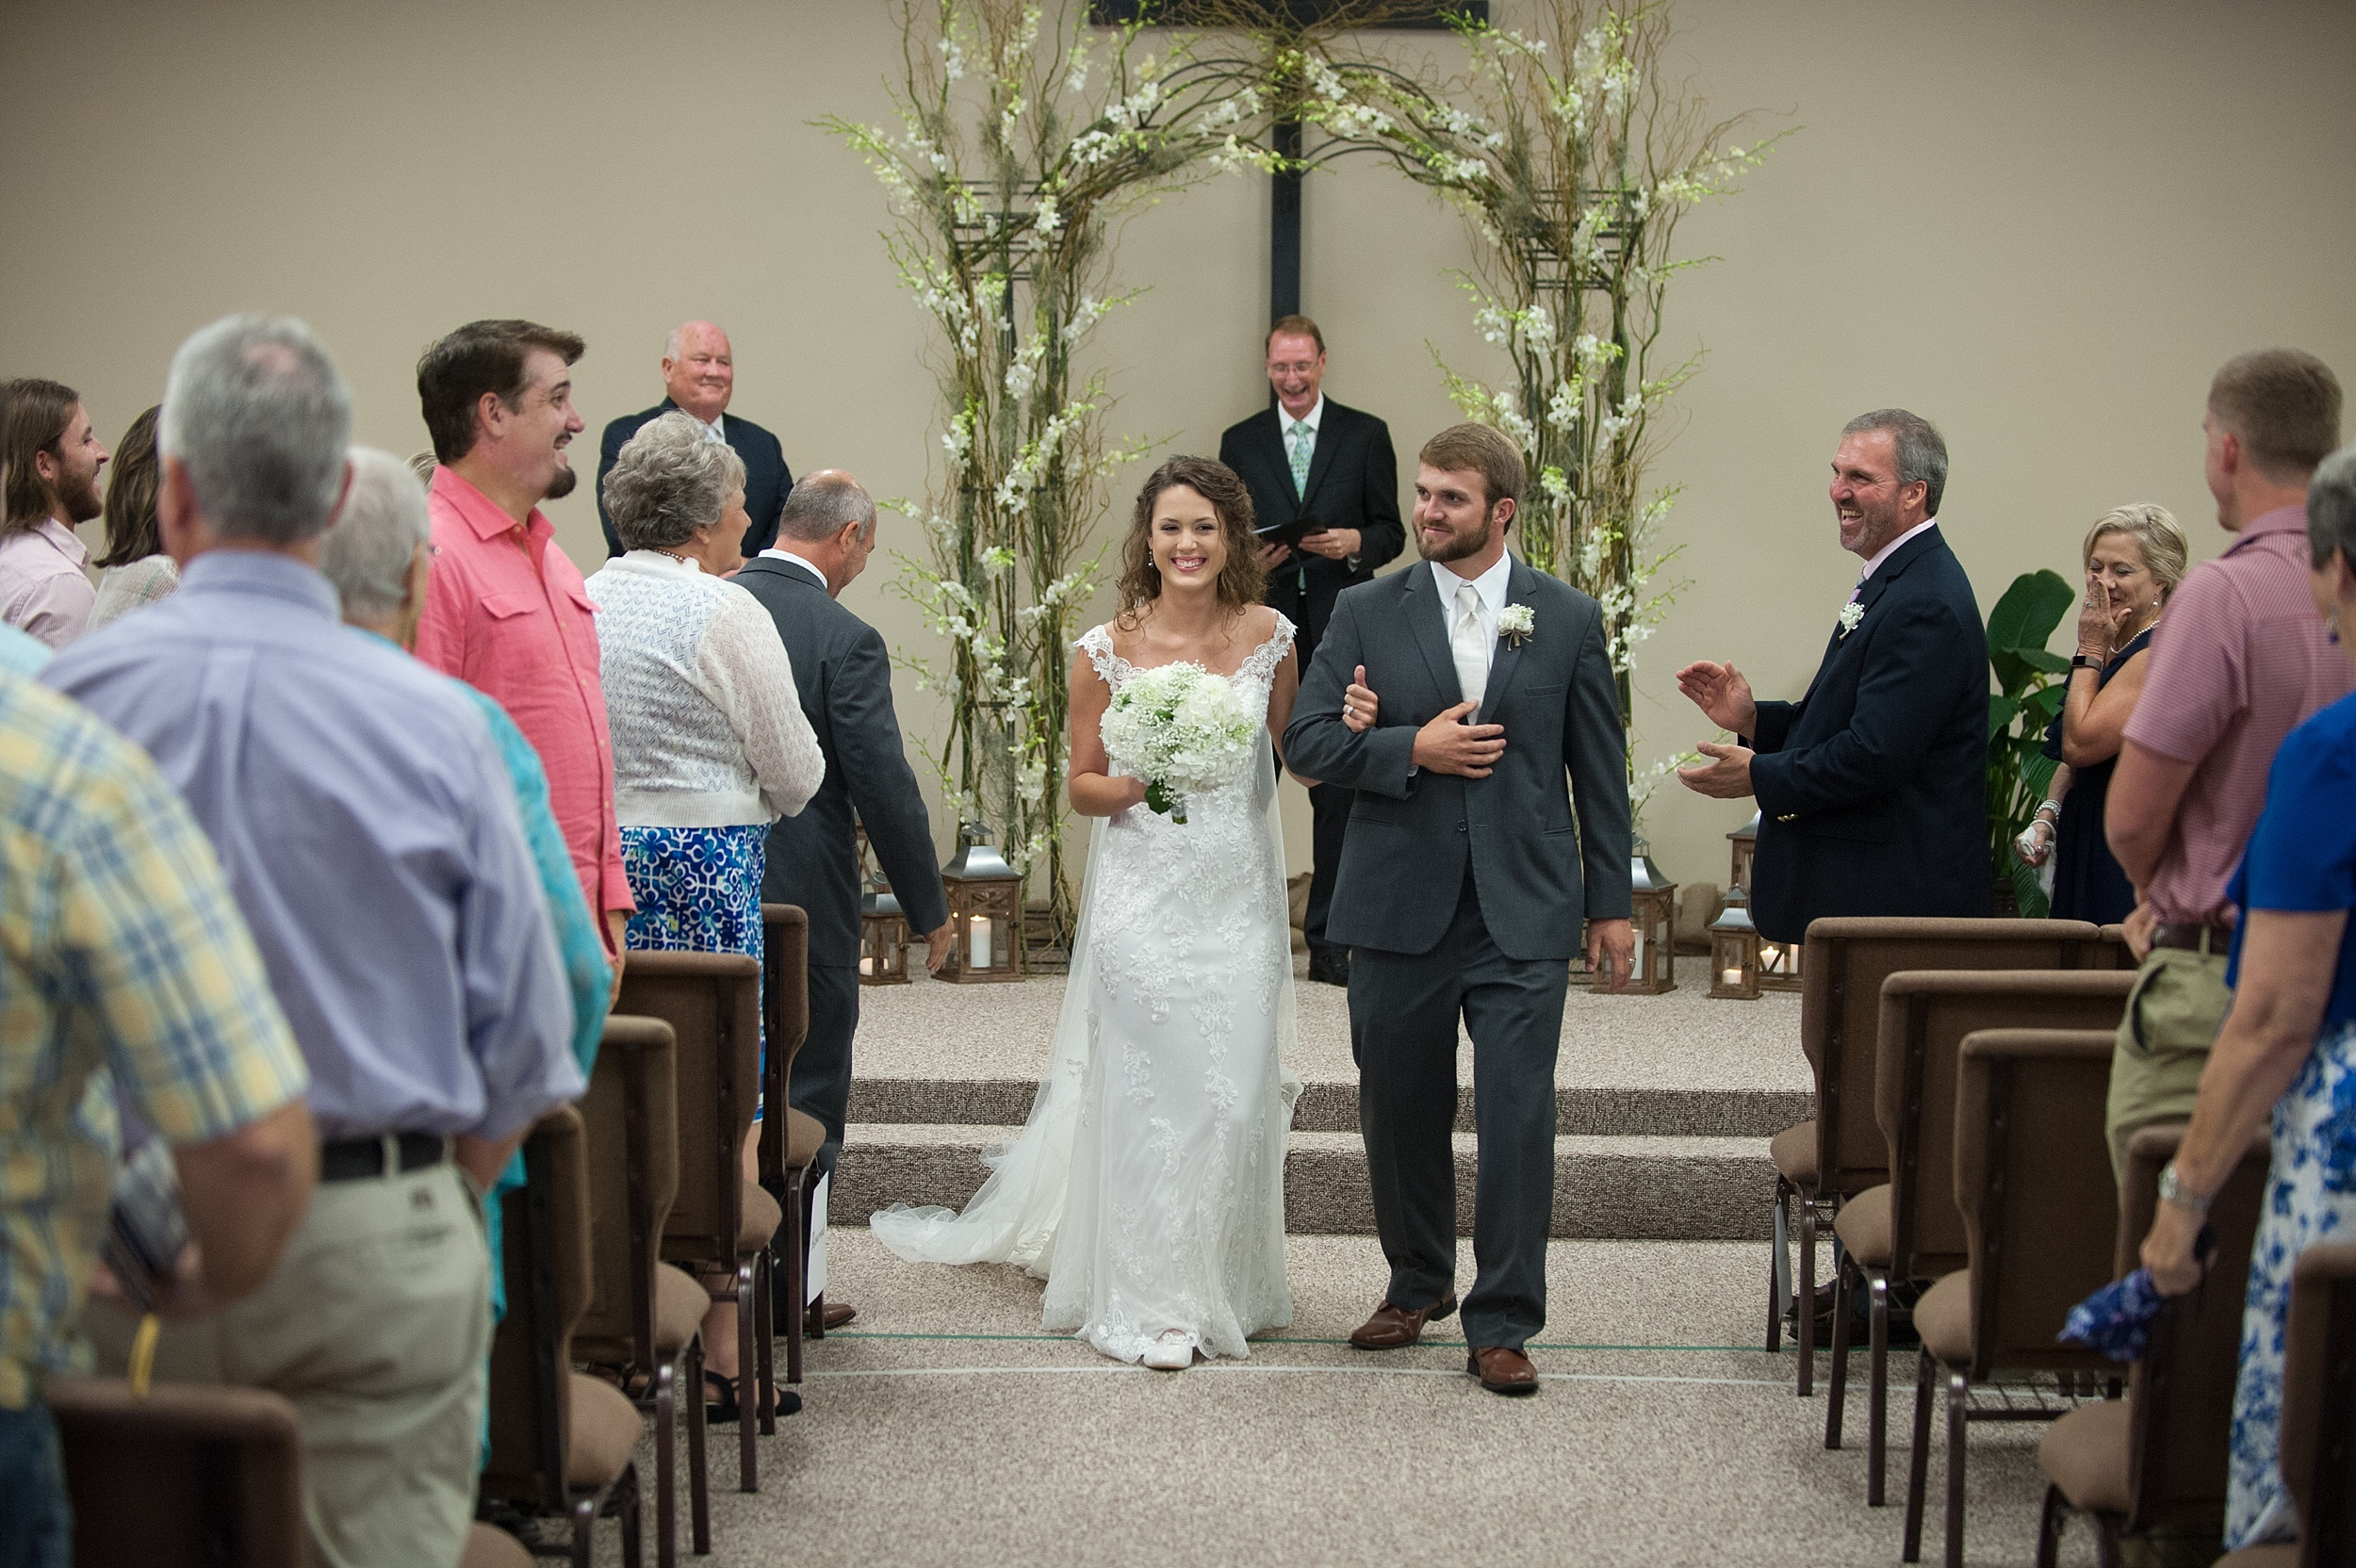 the happy married couple come down the isle as teary parents and friends clap and cheer